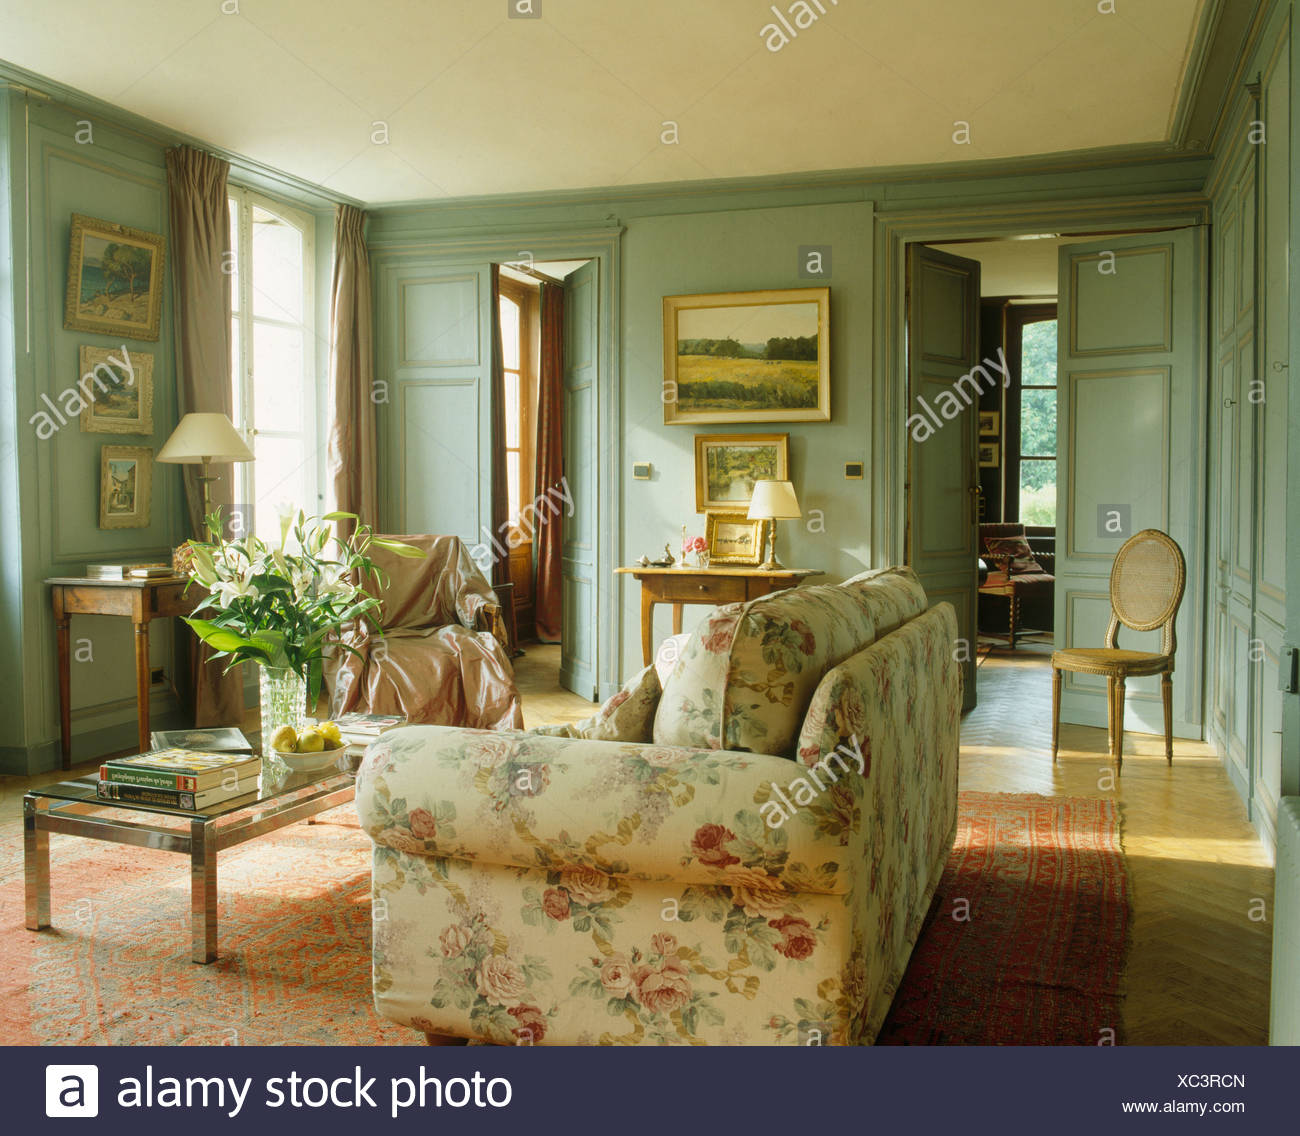 Floral Sofa In French Country Living Room With Gray Green Painted Walls